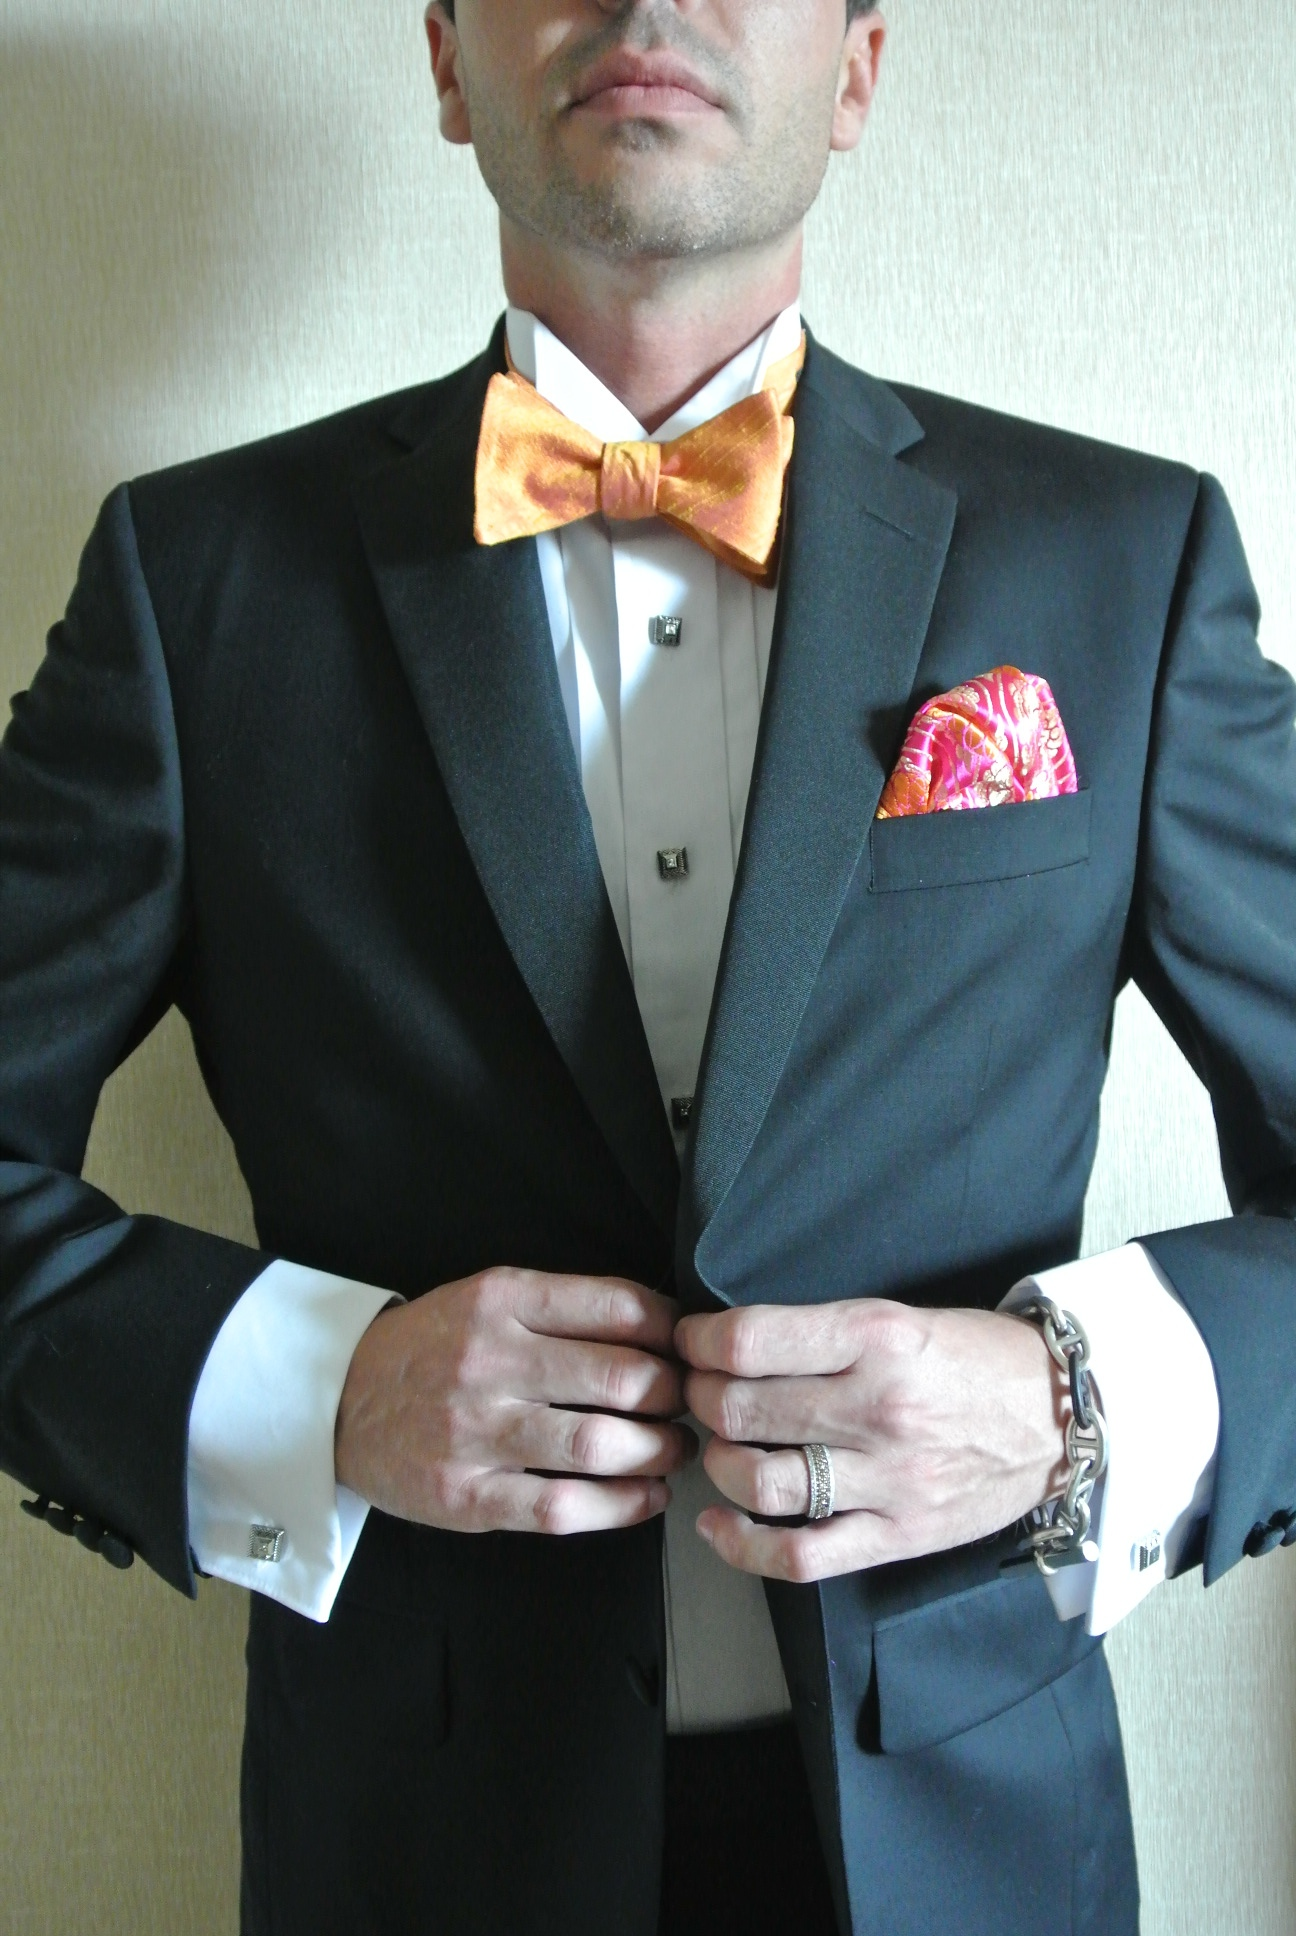 Marek, however, was the picture of a perfect gentleman, with his bow-tie, pocket square, and rings in perfect place.   Destination Wedding Planner Chicago & Las Veags:  Andrea Eppolito  | Tuxedo:  Vera Wang Black